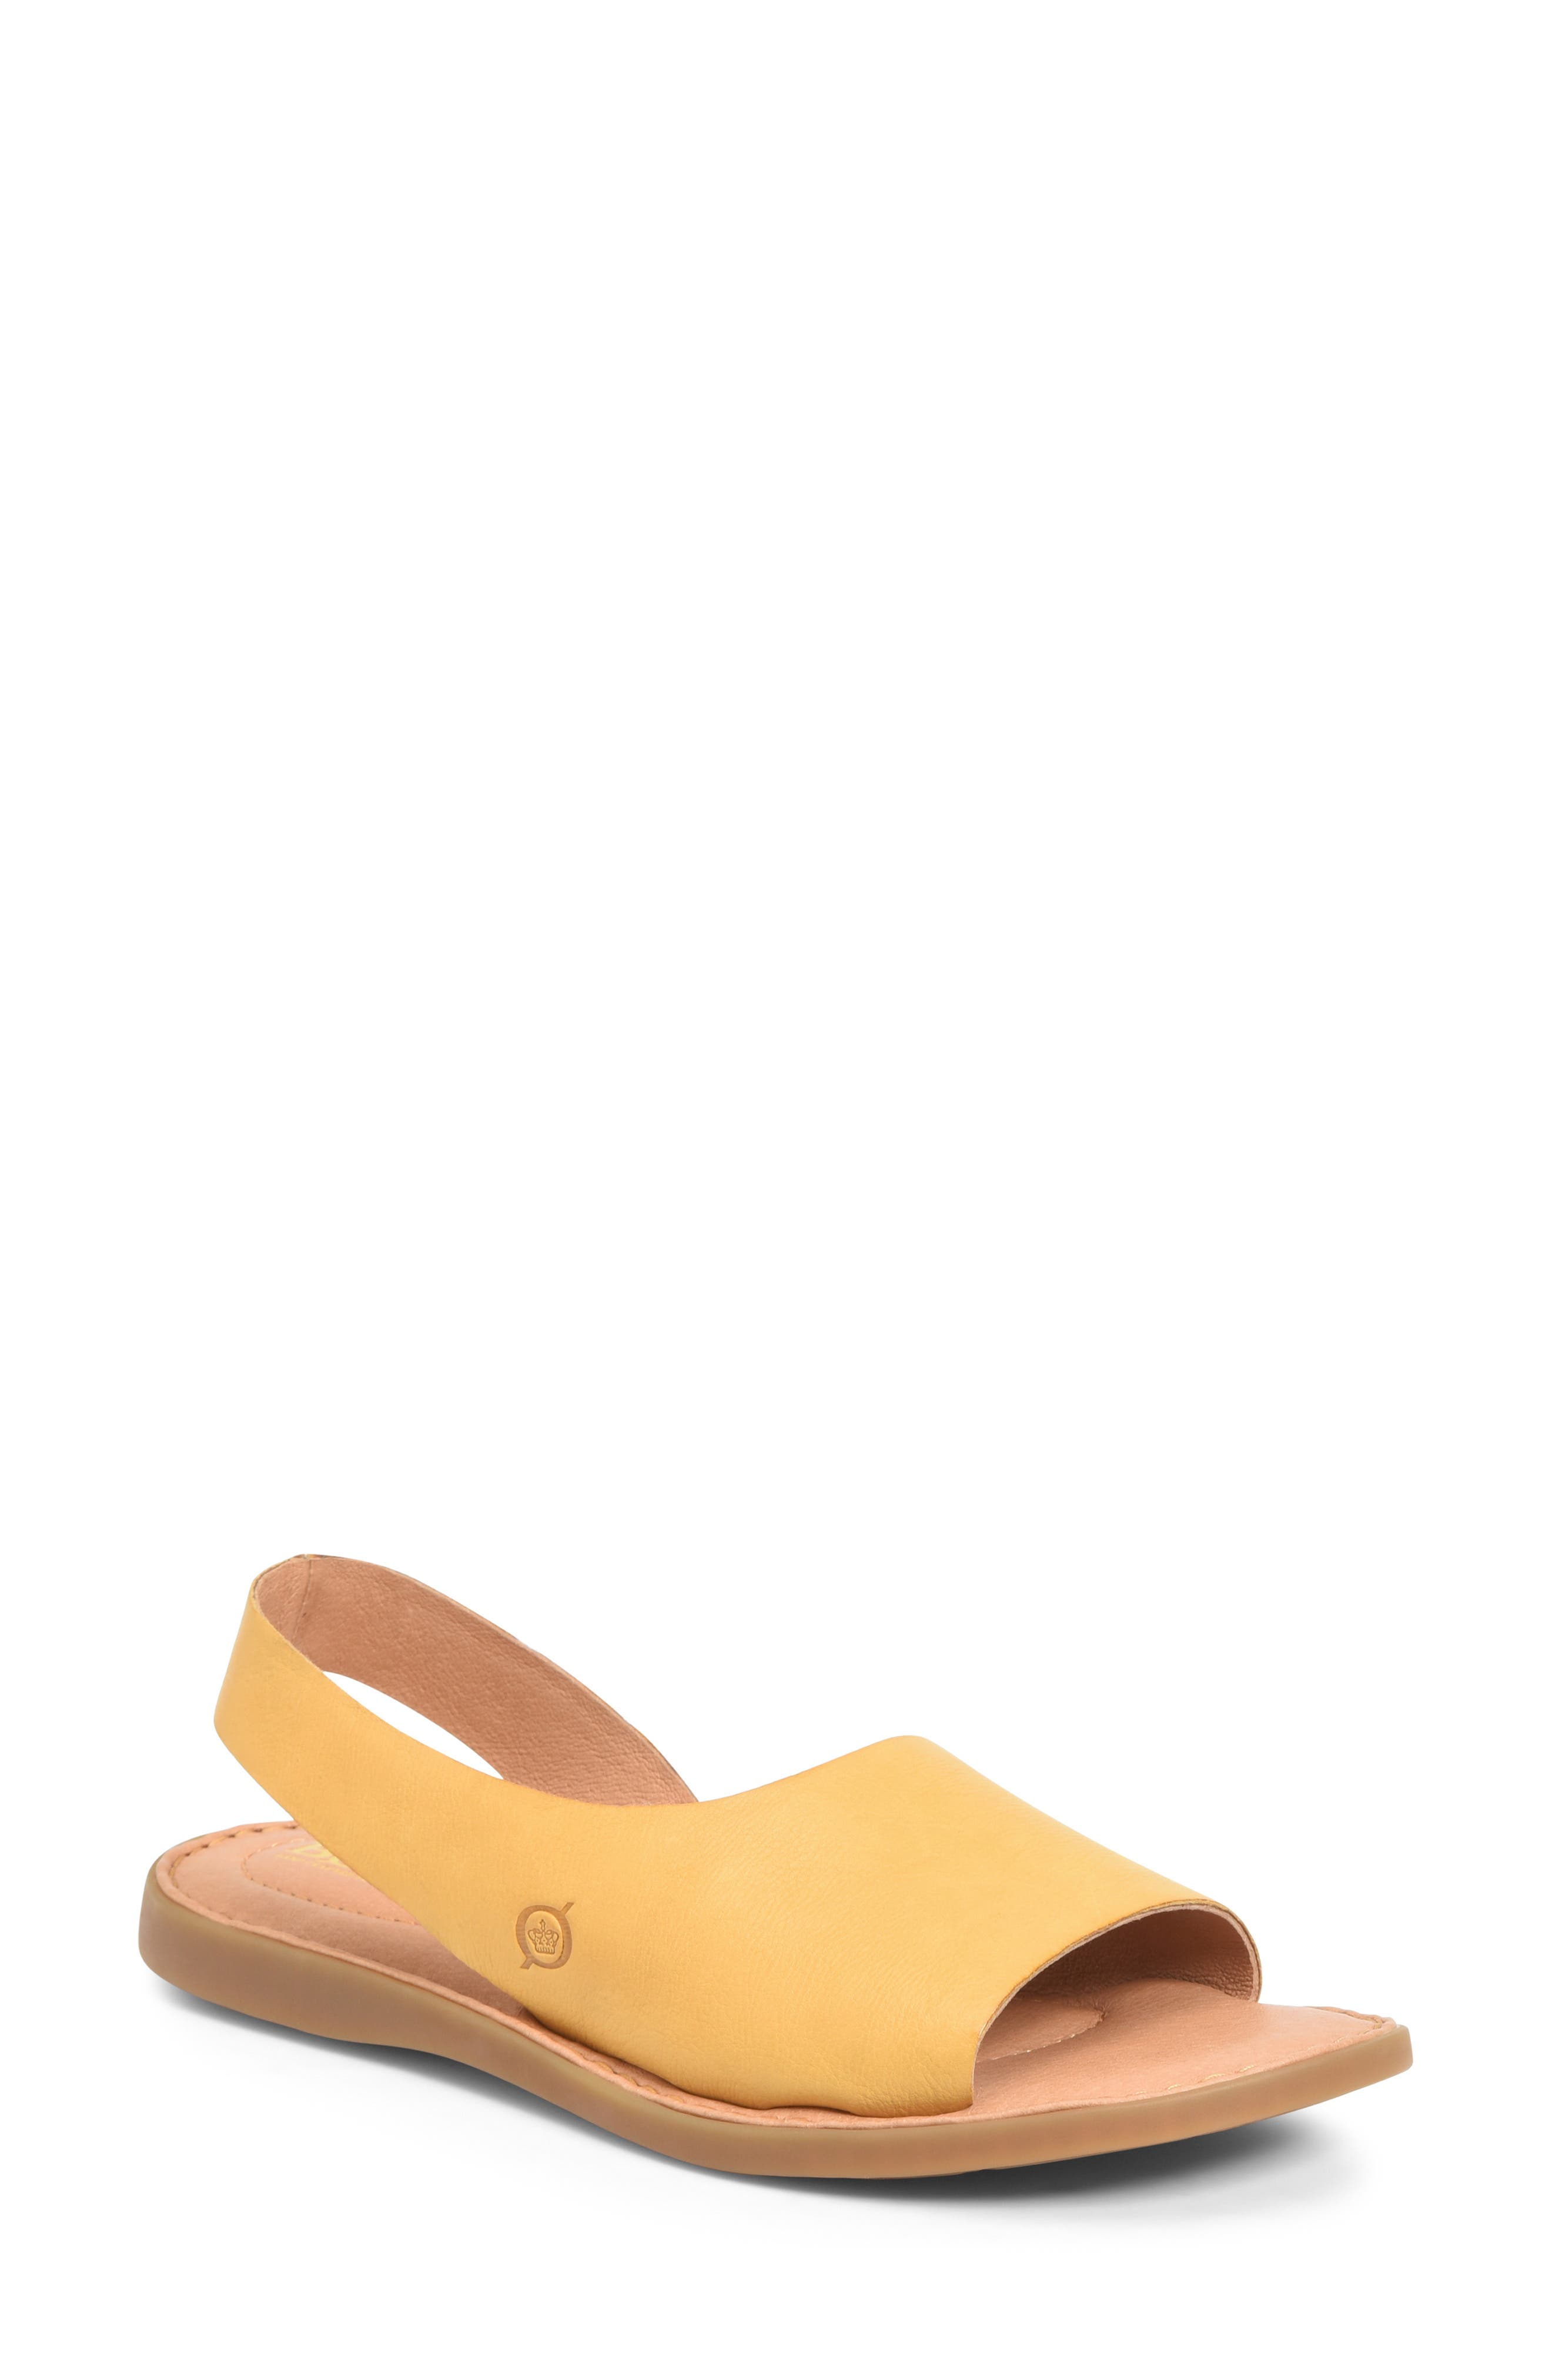 Asymmetrical styling and a streamlined design define this comfortably cushioned sandal grounded by curlicue-shaped treads that leave pretty footprints. Style Name:B?rn Inlet Sandal (Women). Style Number: 6021653. Available in stores.